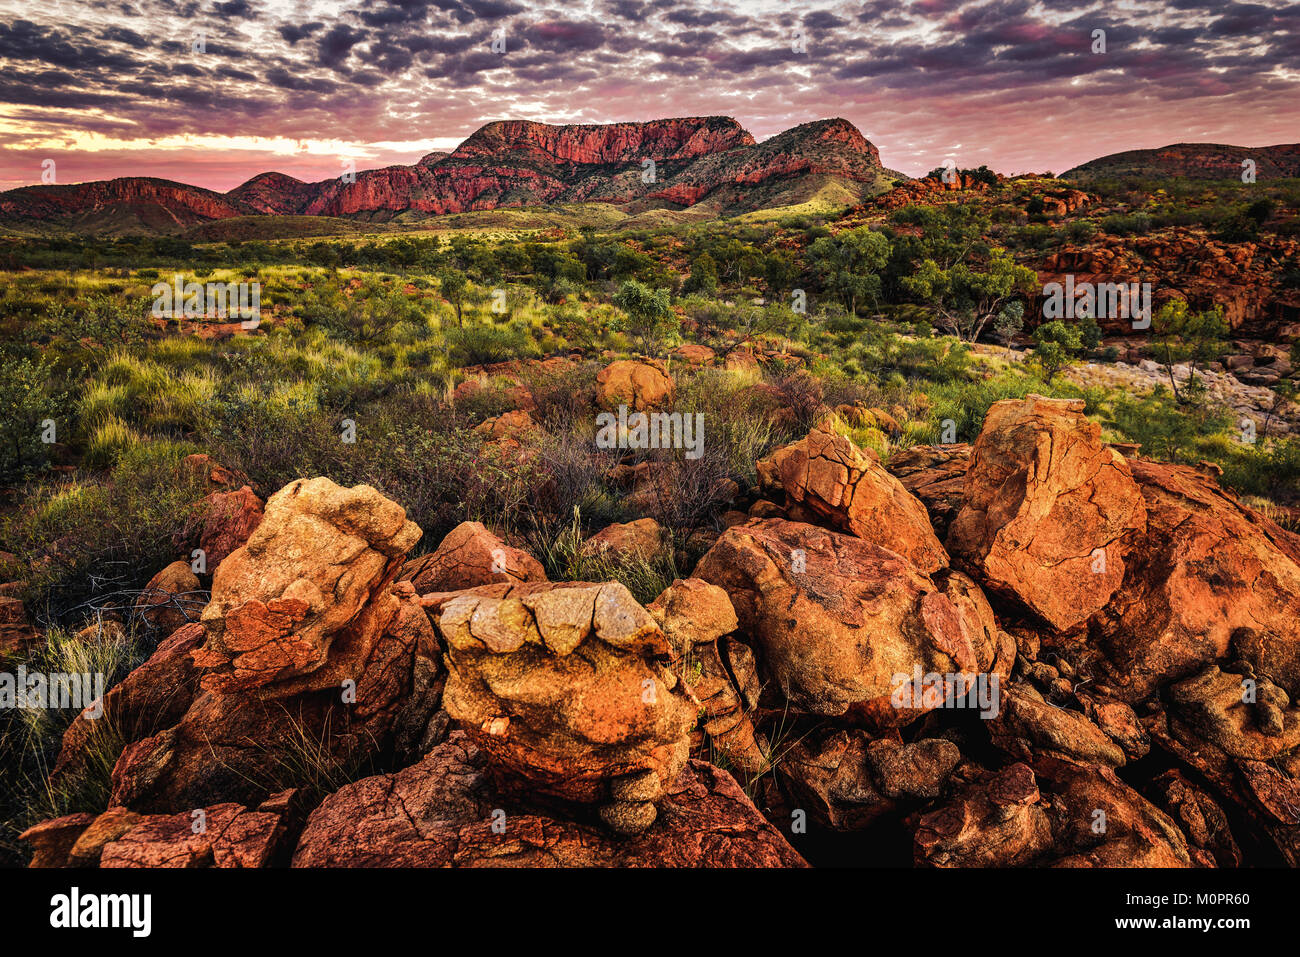 Sunset at Ormiston Pound, West Macdonnell Ranges, Northern Territory - Stock Image